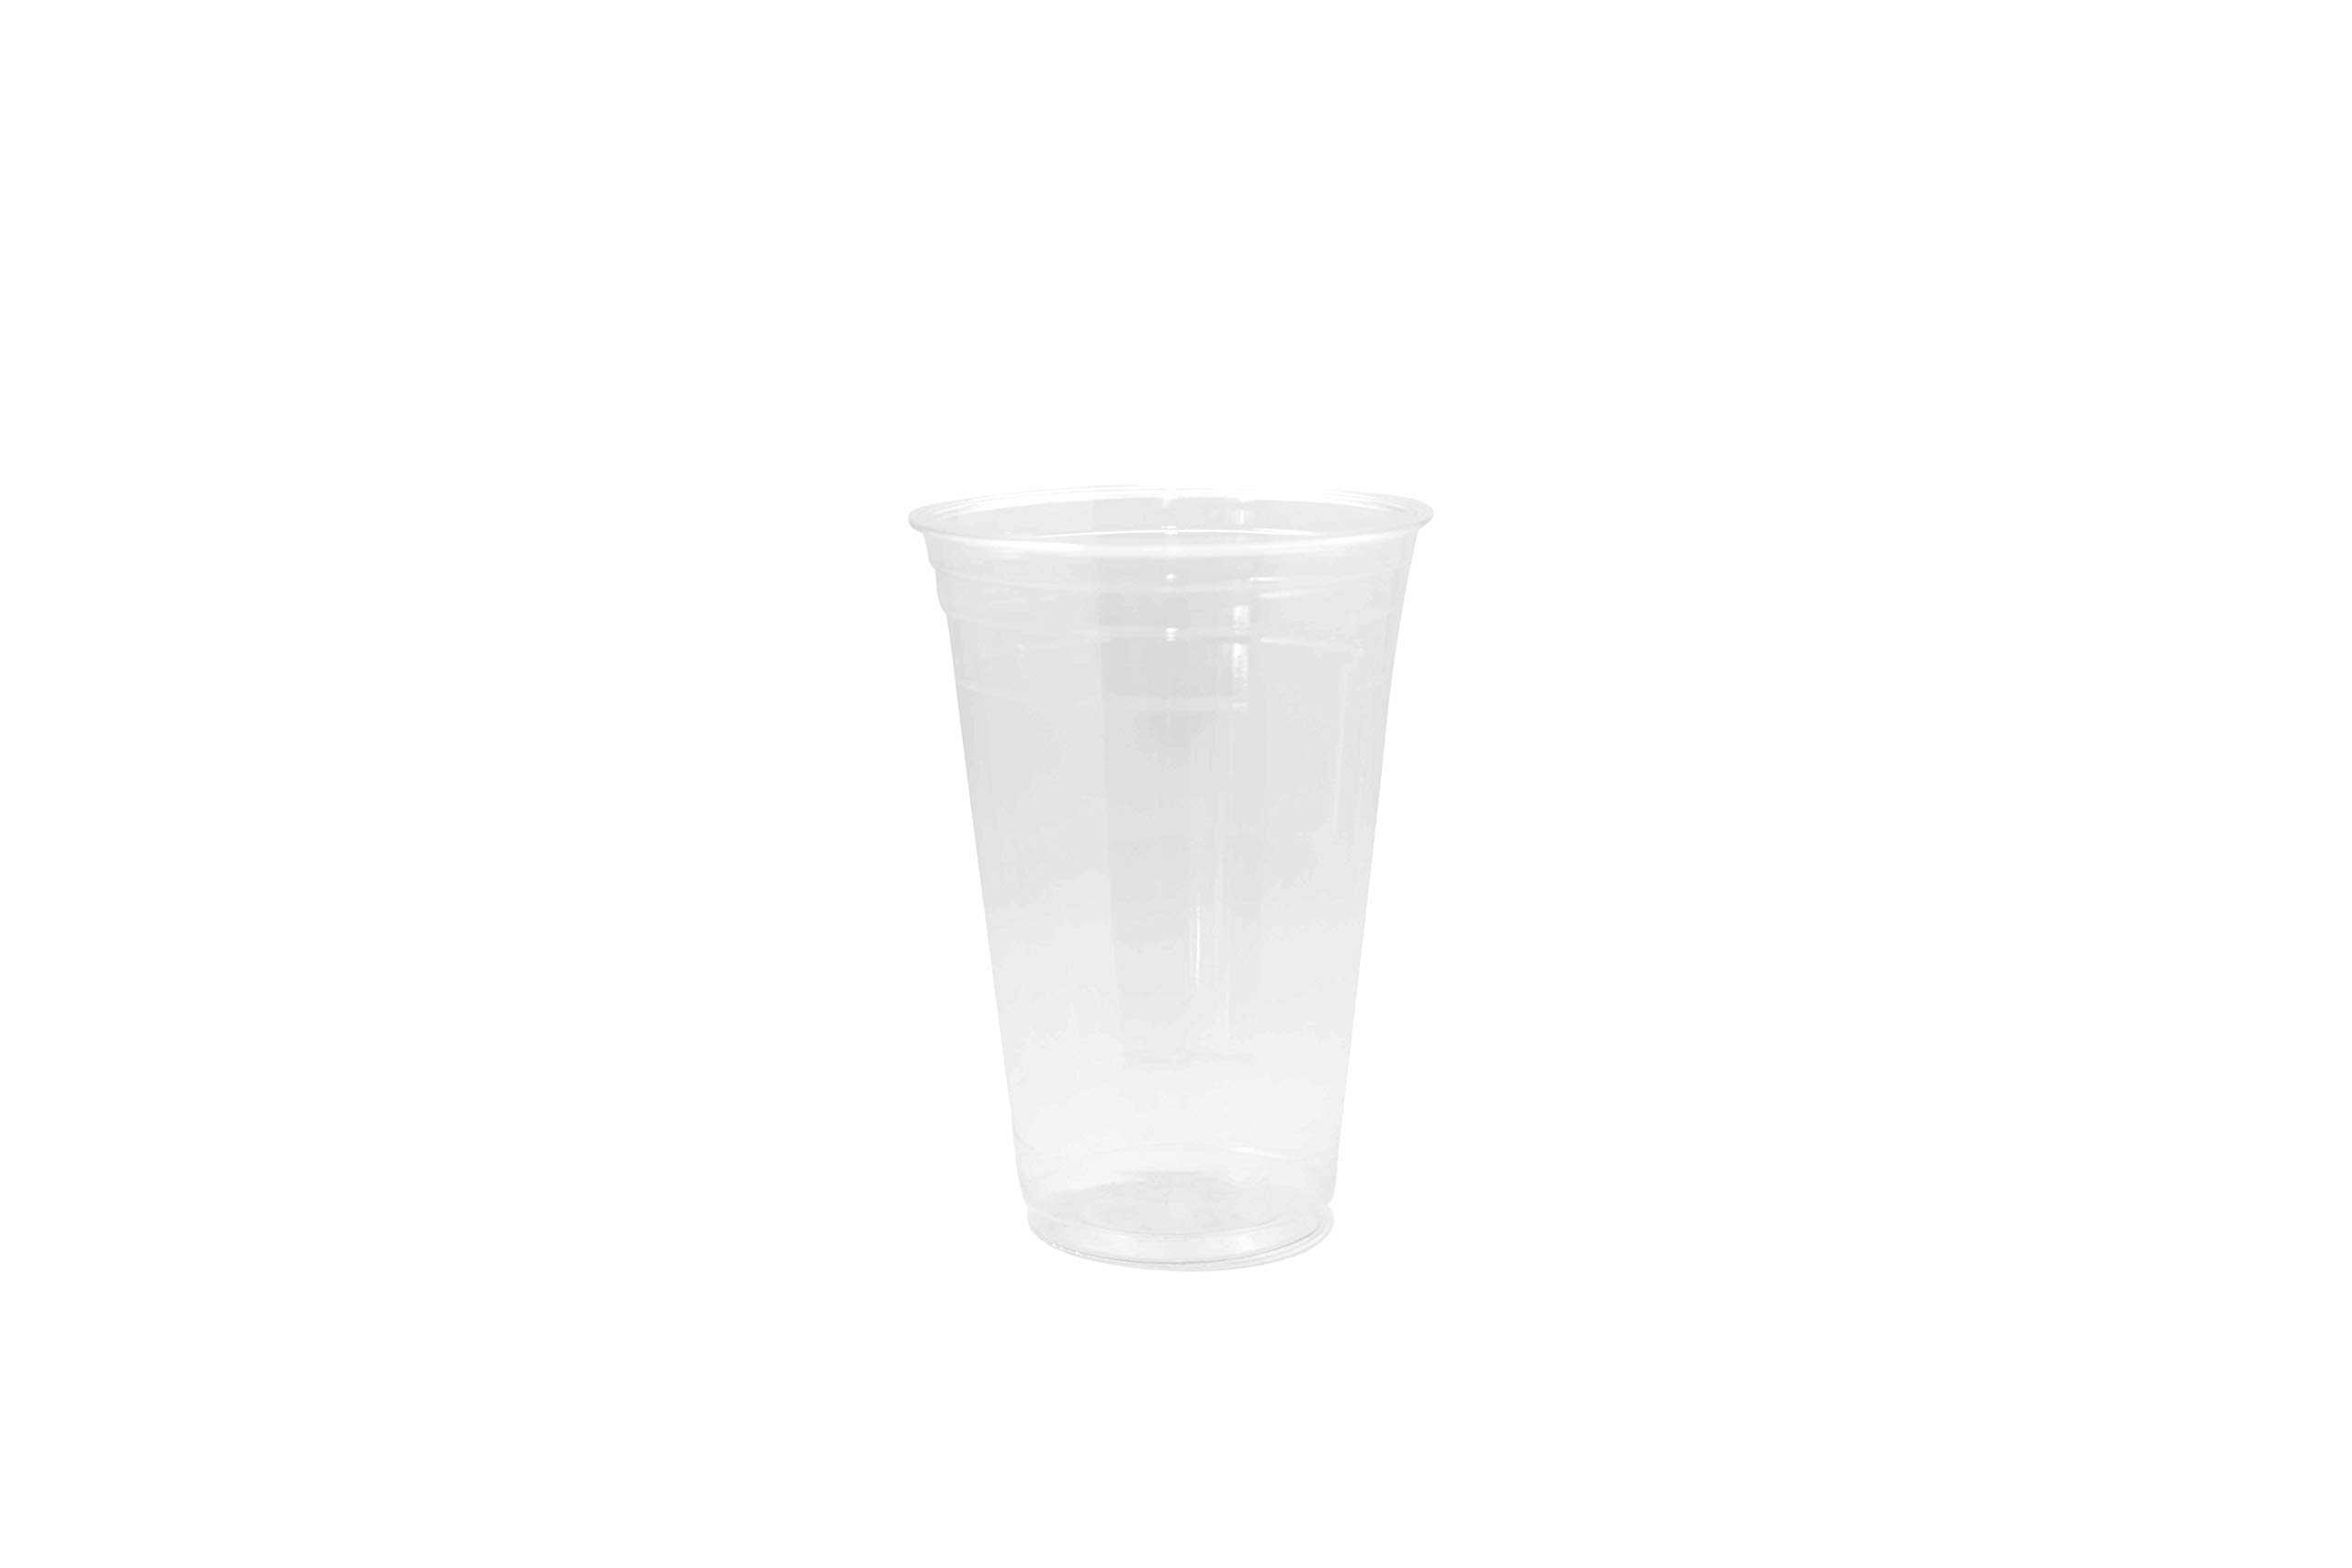 [200 COUNT] 20oz Clear Plastic Disposable Cups - Premium 20 oz (ounces) Crystal Clear PET Cup (No Lids) for Cold Drinks Iced Coffee Tea Juices Smoothies Slush Soda Cocktails Beer Sundae Kids Safe